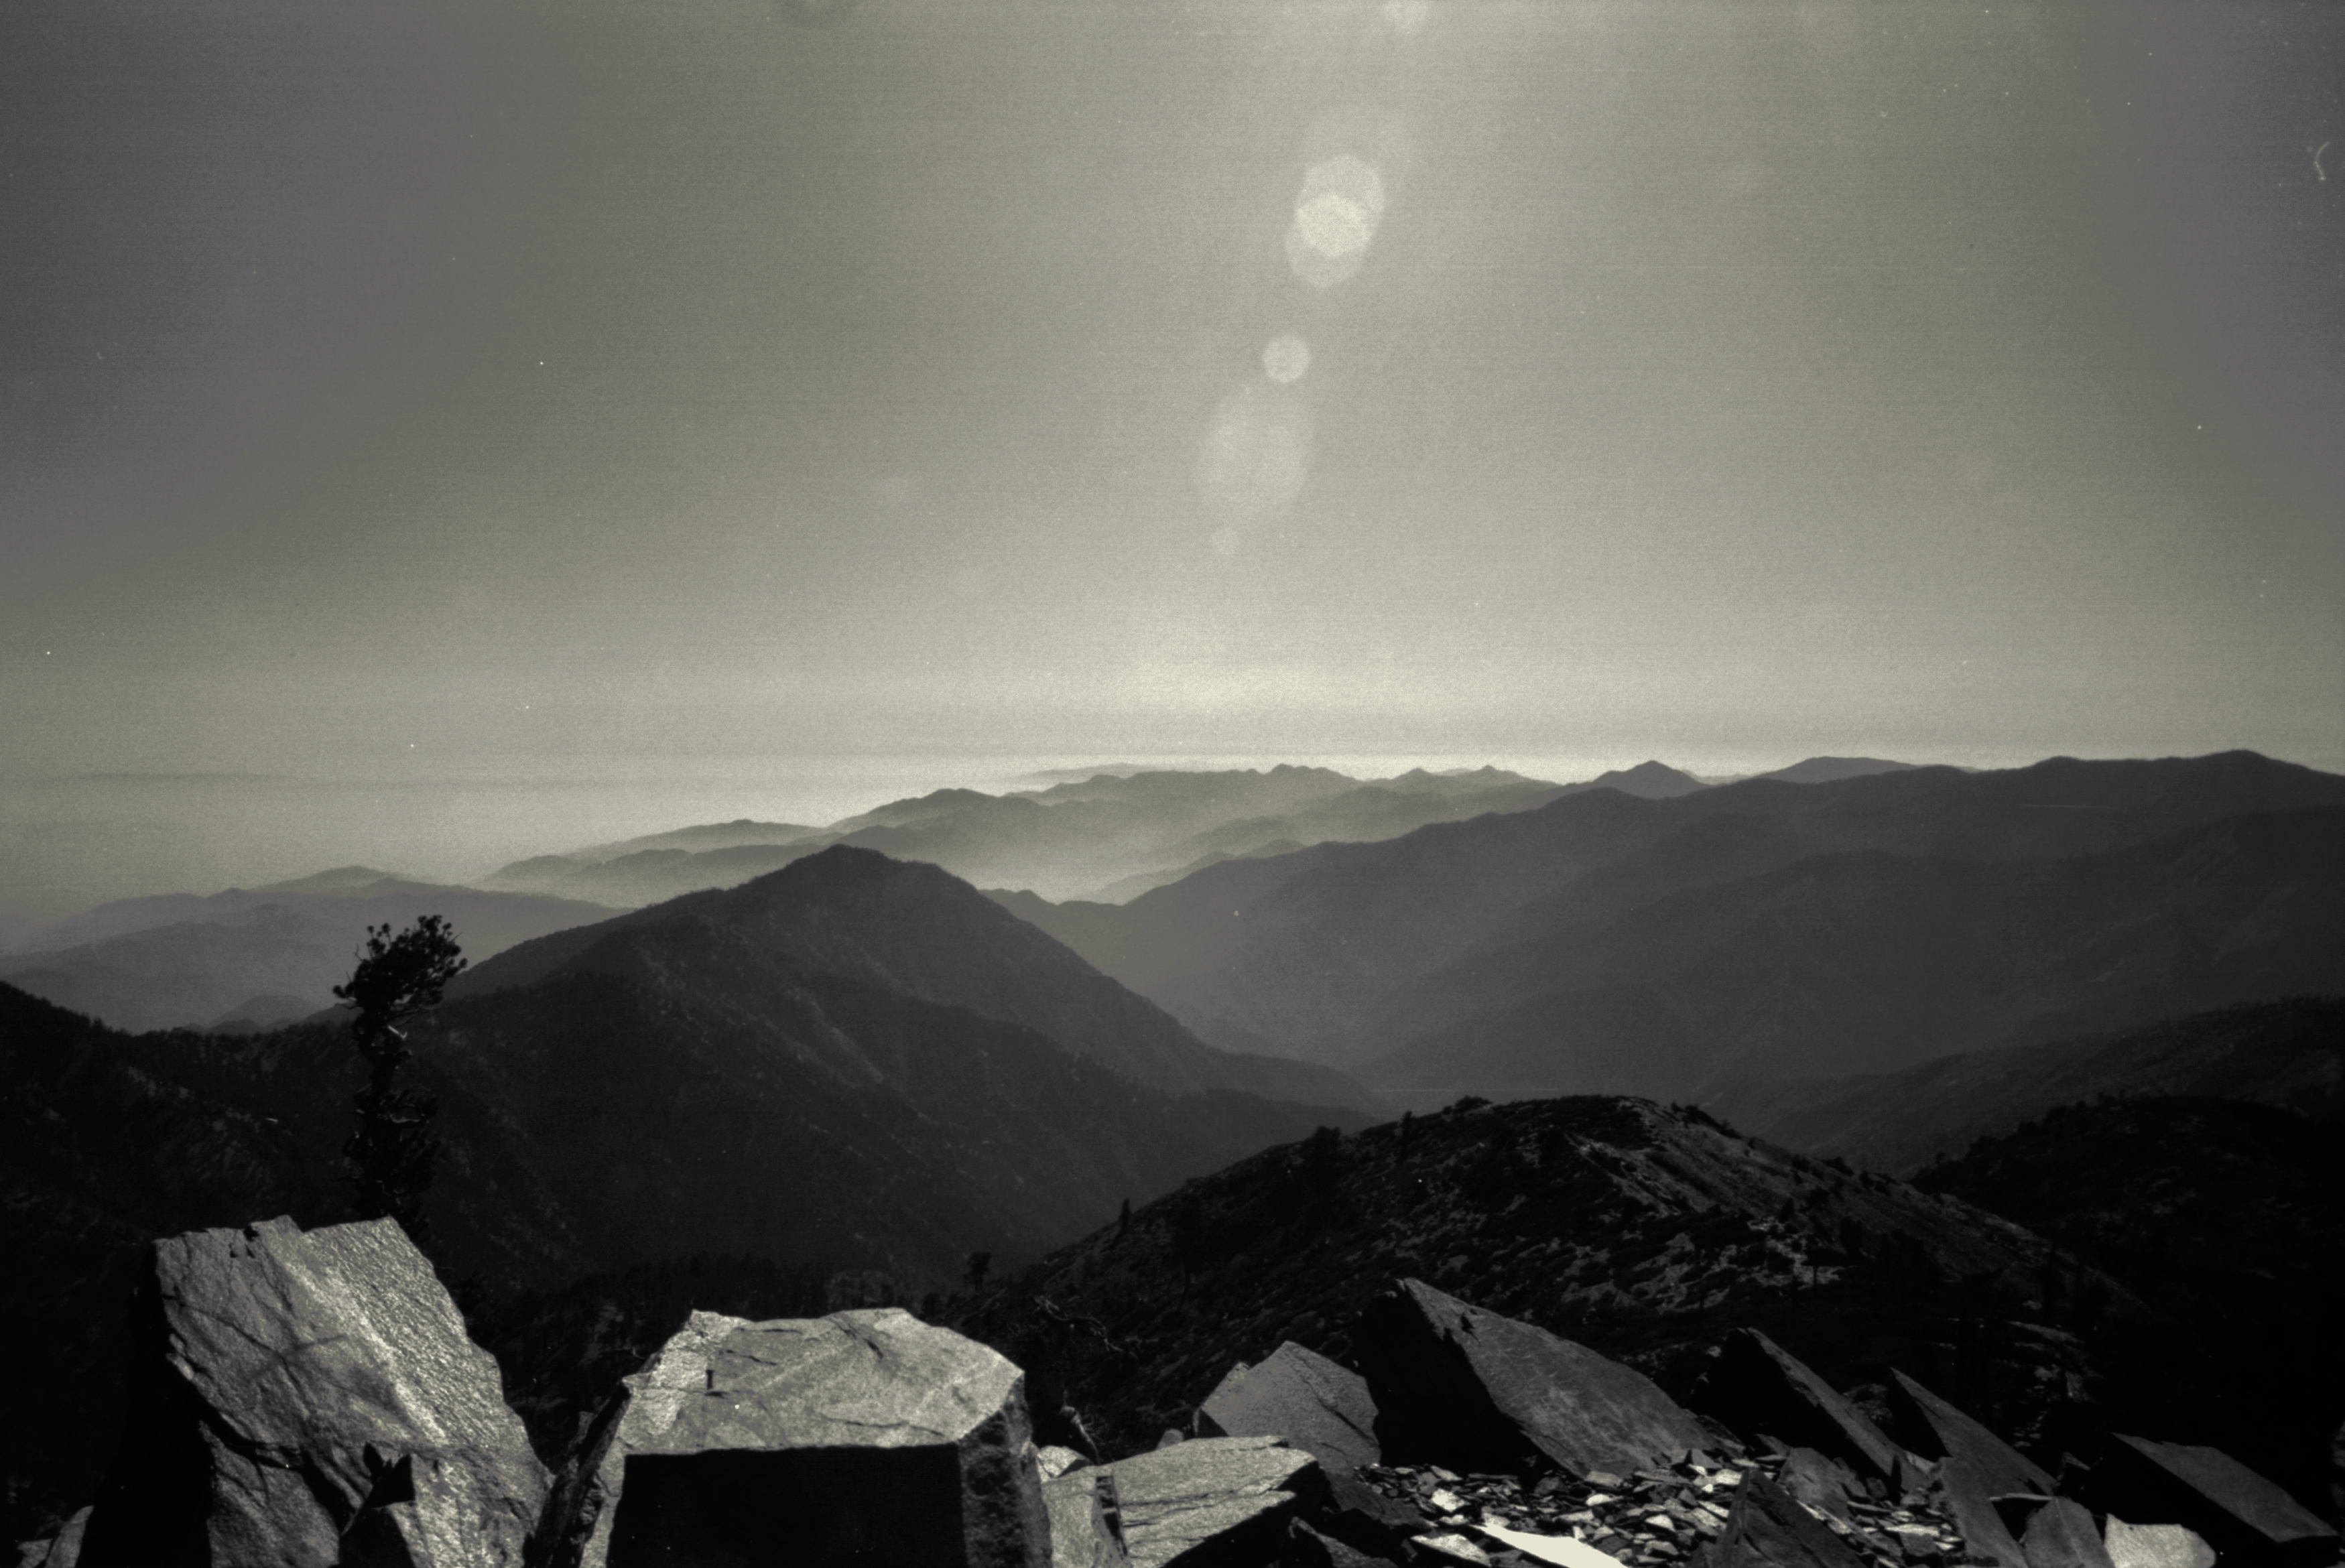 View to North from Pine Mountain, 2012, 35 mm B&W film.